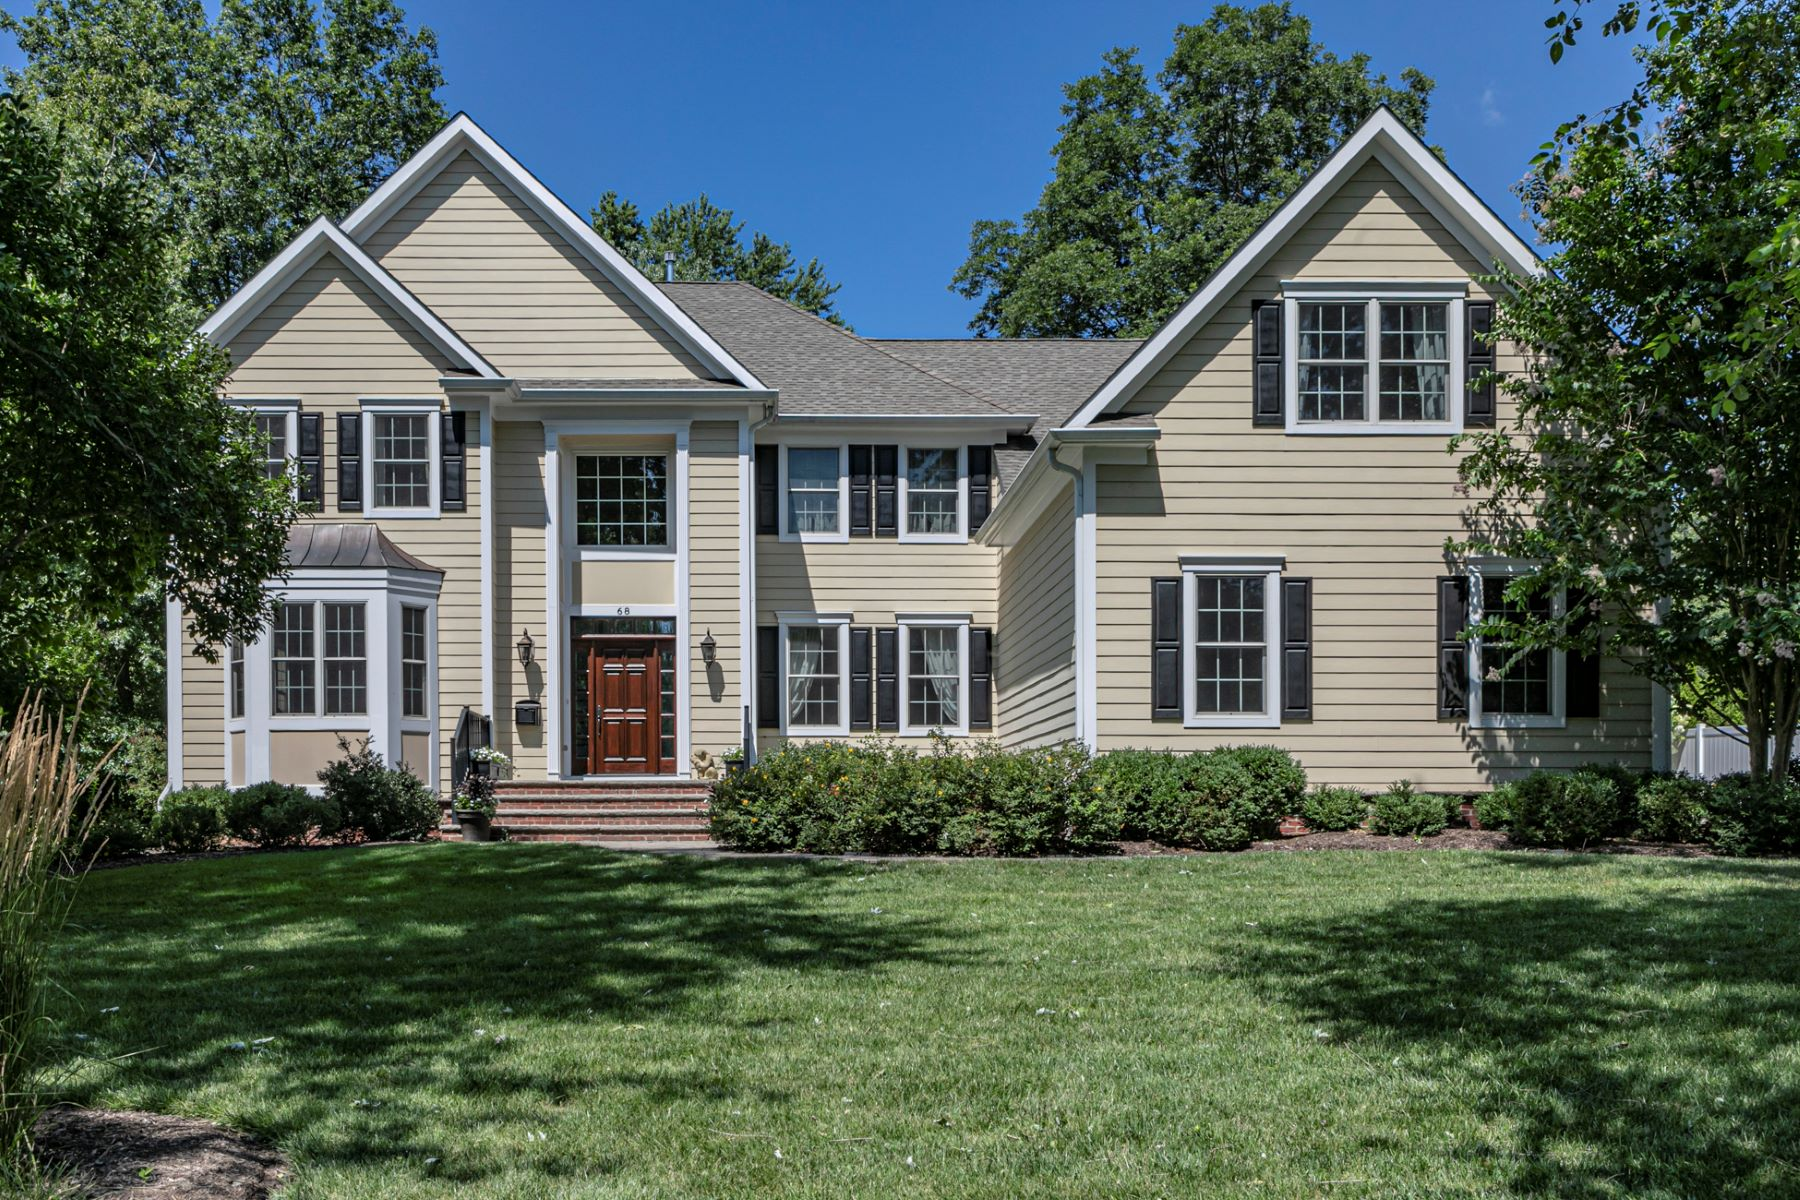 Single Family Homes for Sale at Like a Showhouse That's Ready for Real Life! 68 Magnolia Lane, Princeton, New Jersey 08540 United States